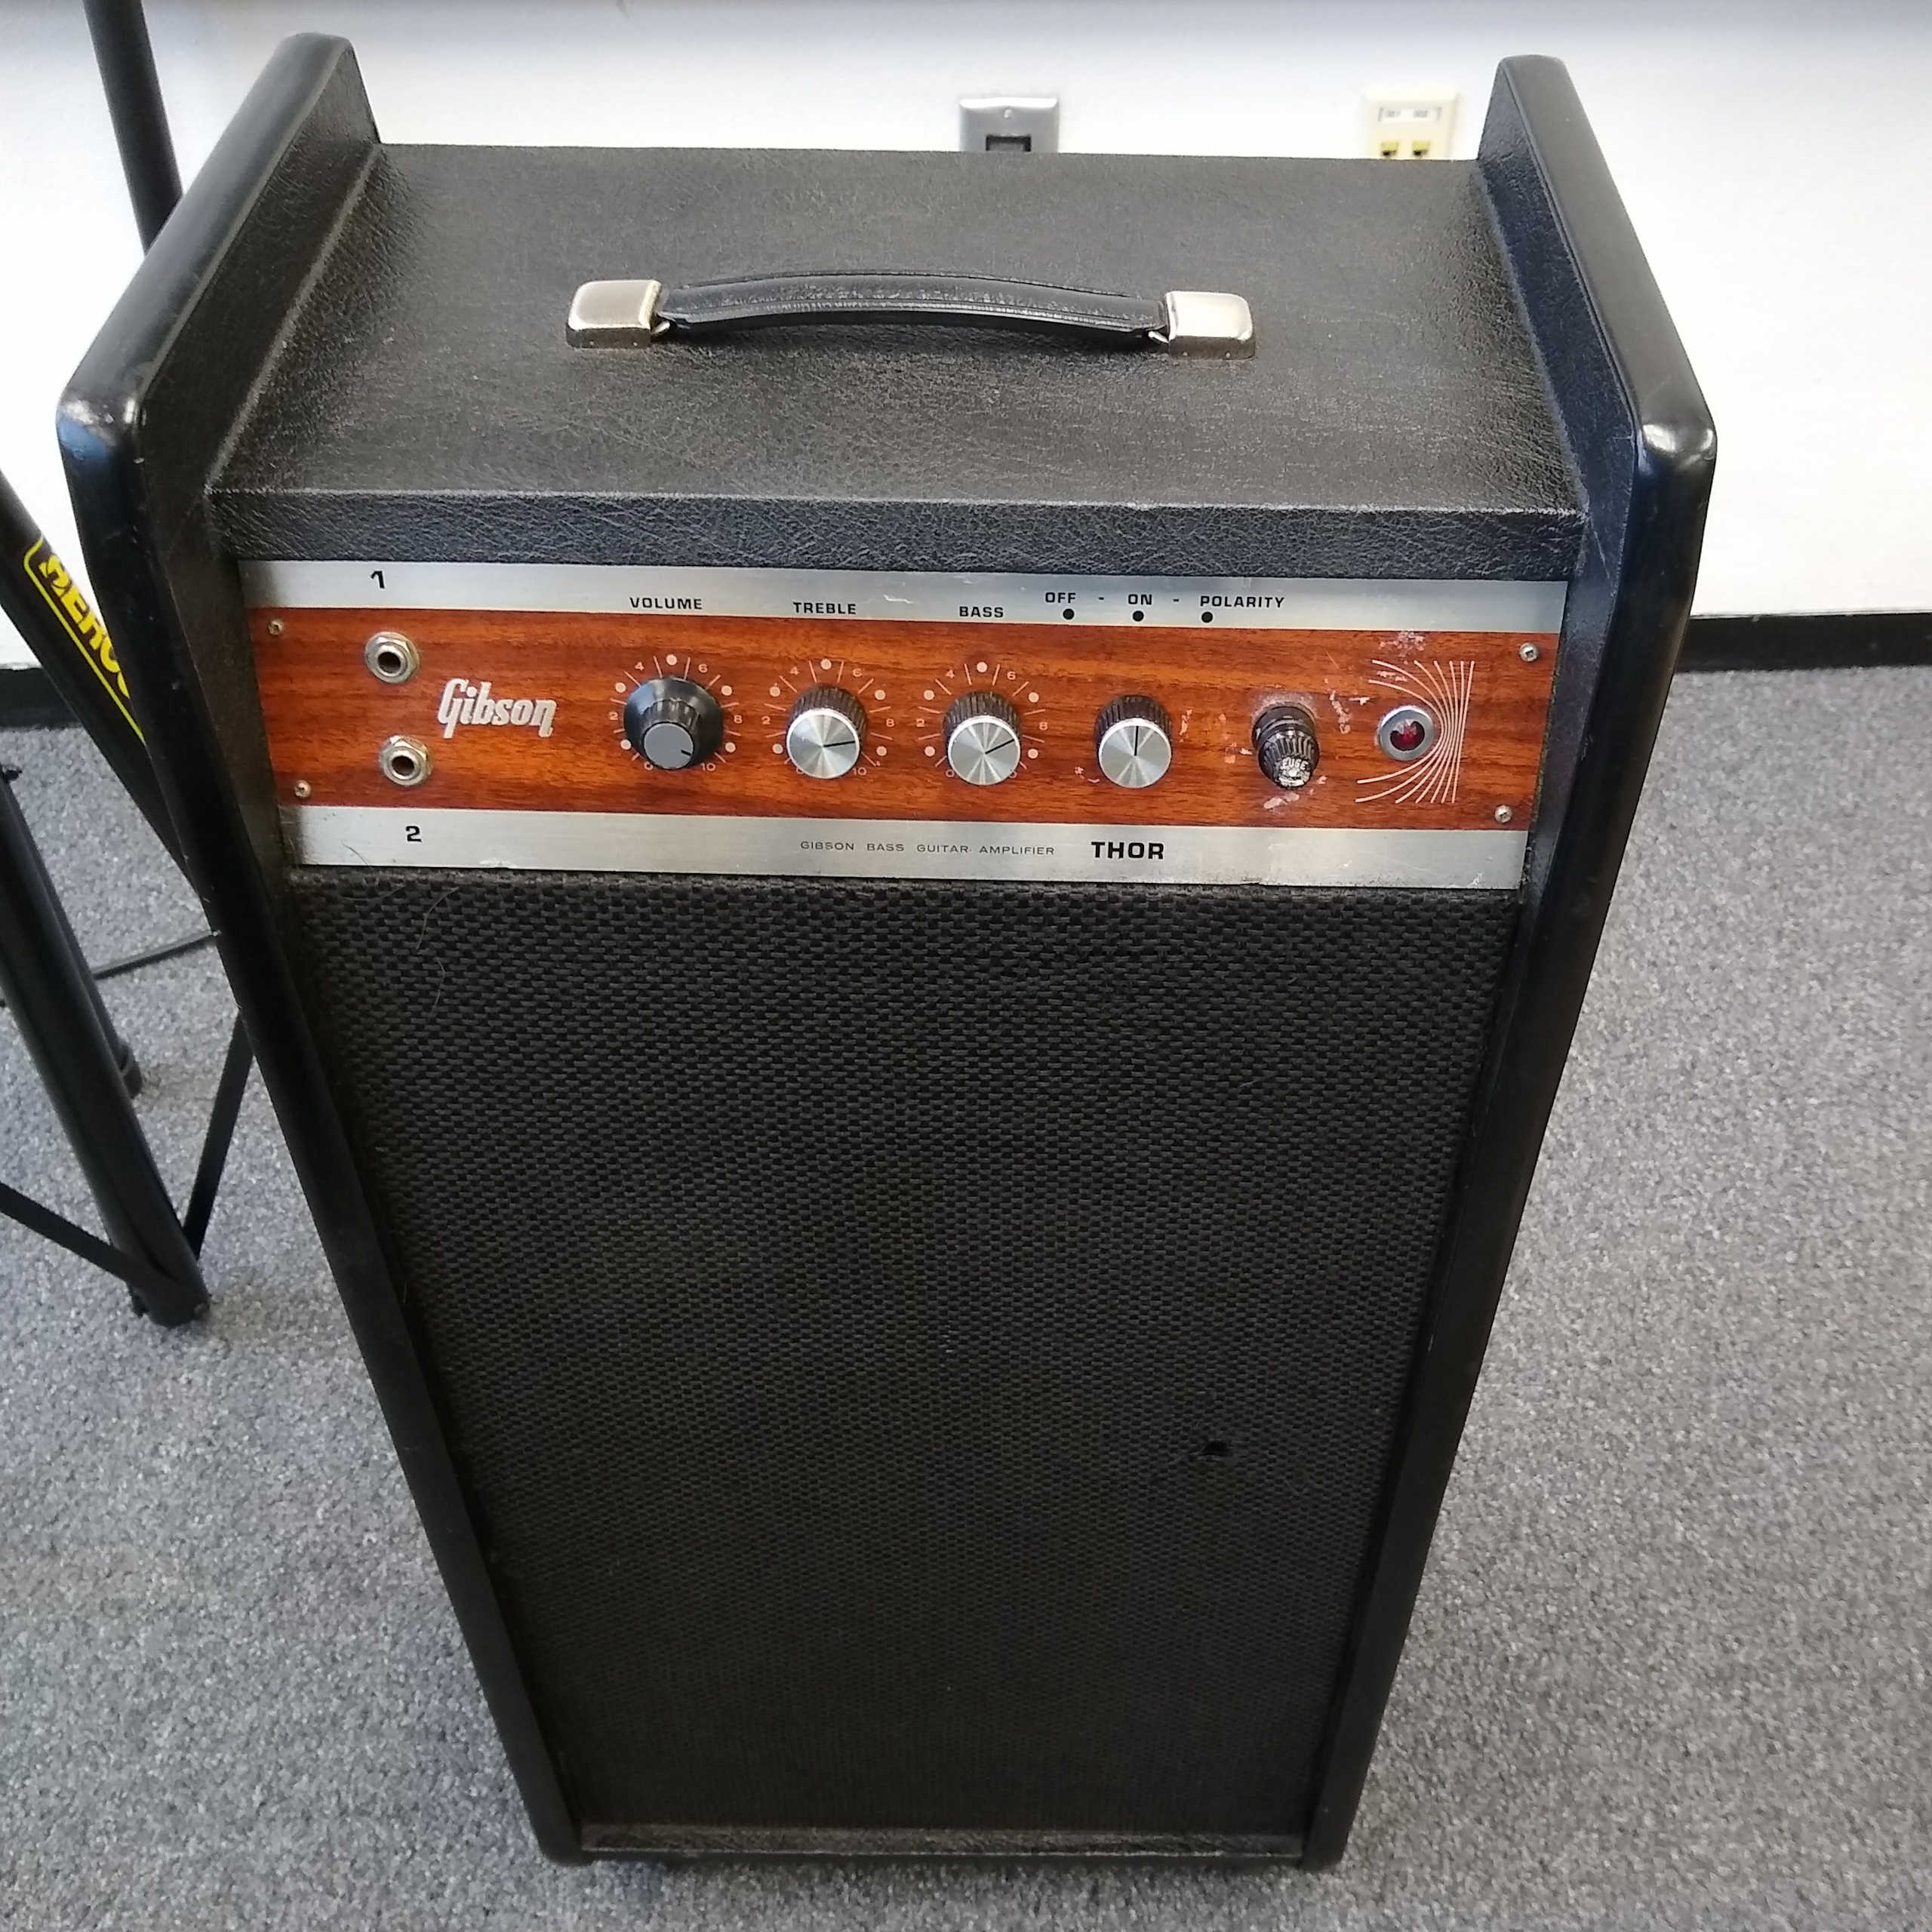 Gibson Thor Bass Amplifier